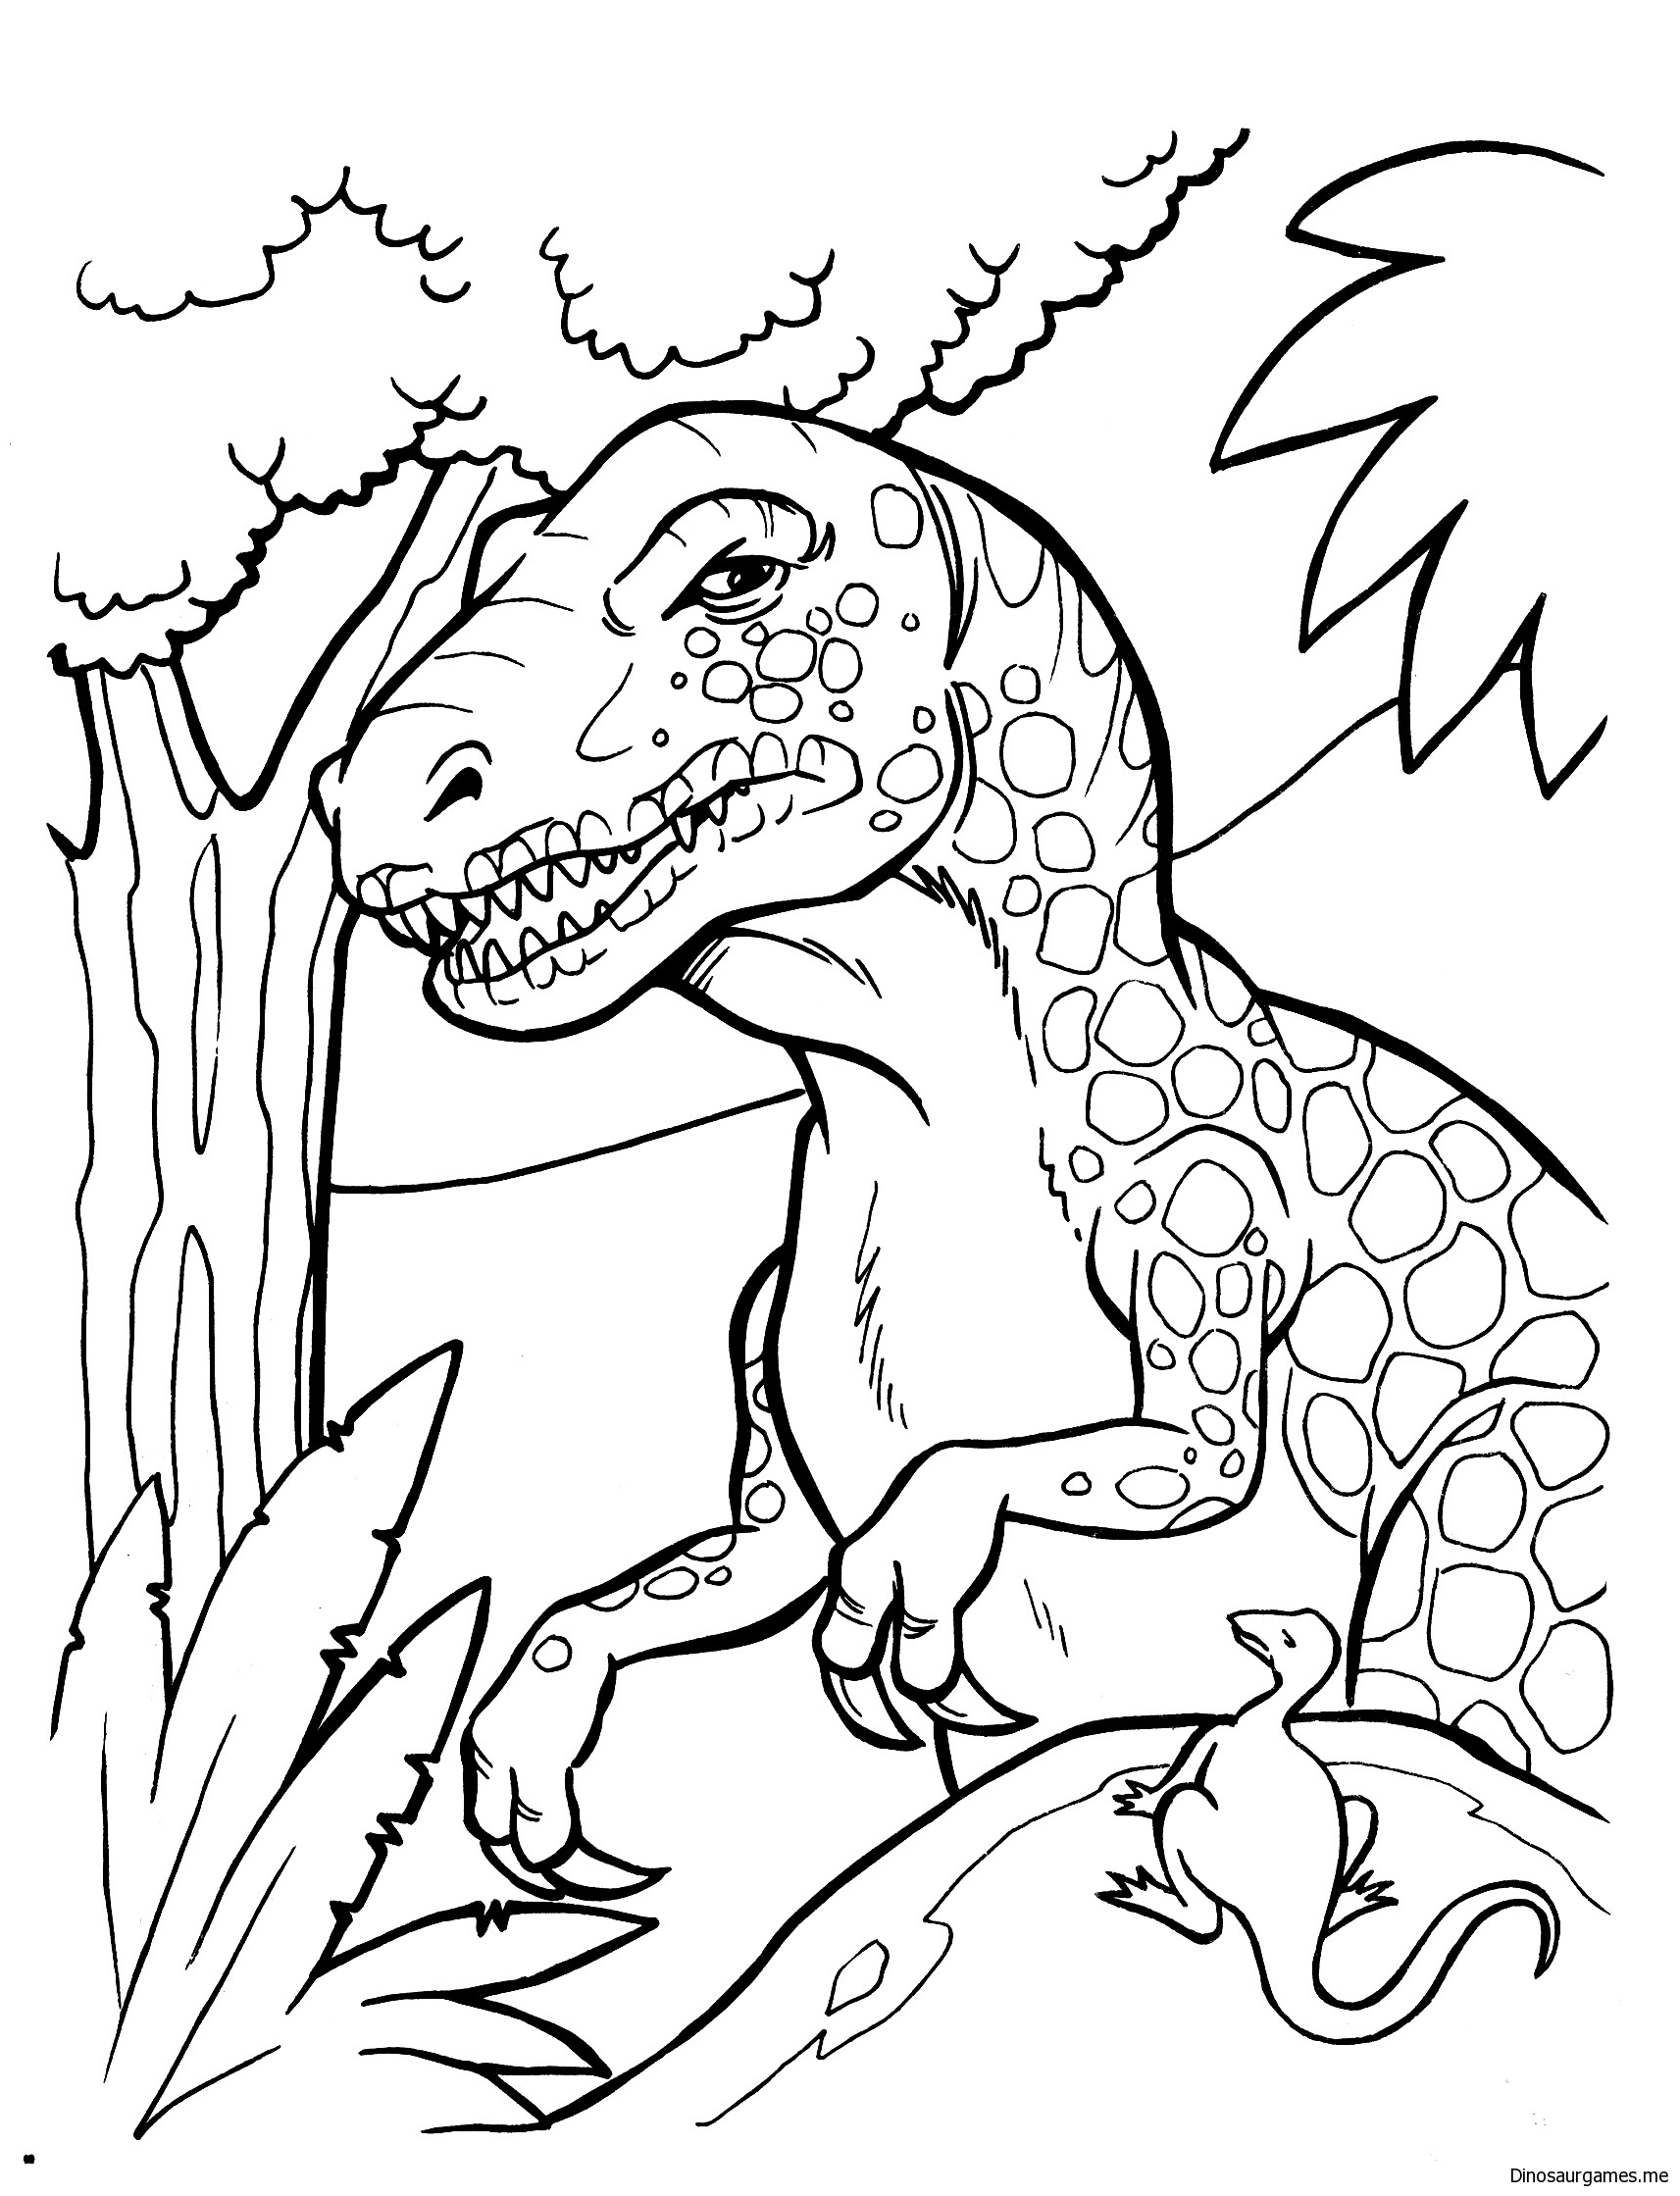 Tyrannosaur Rex Family Coloring Page - Dinosaur Coloring Pages